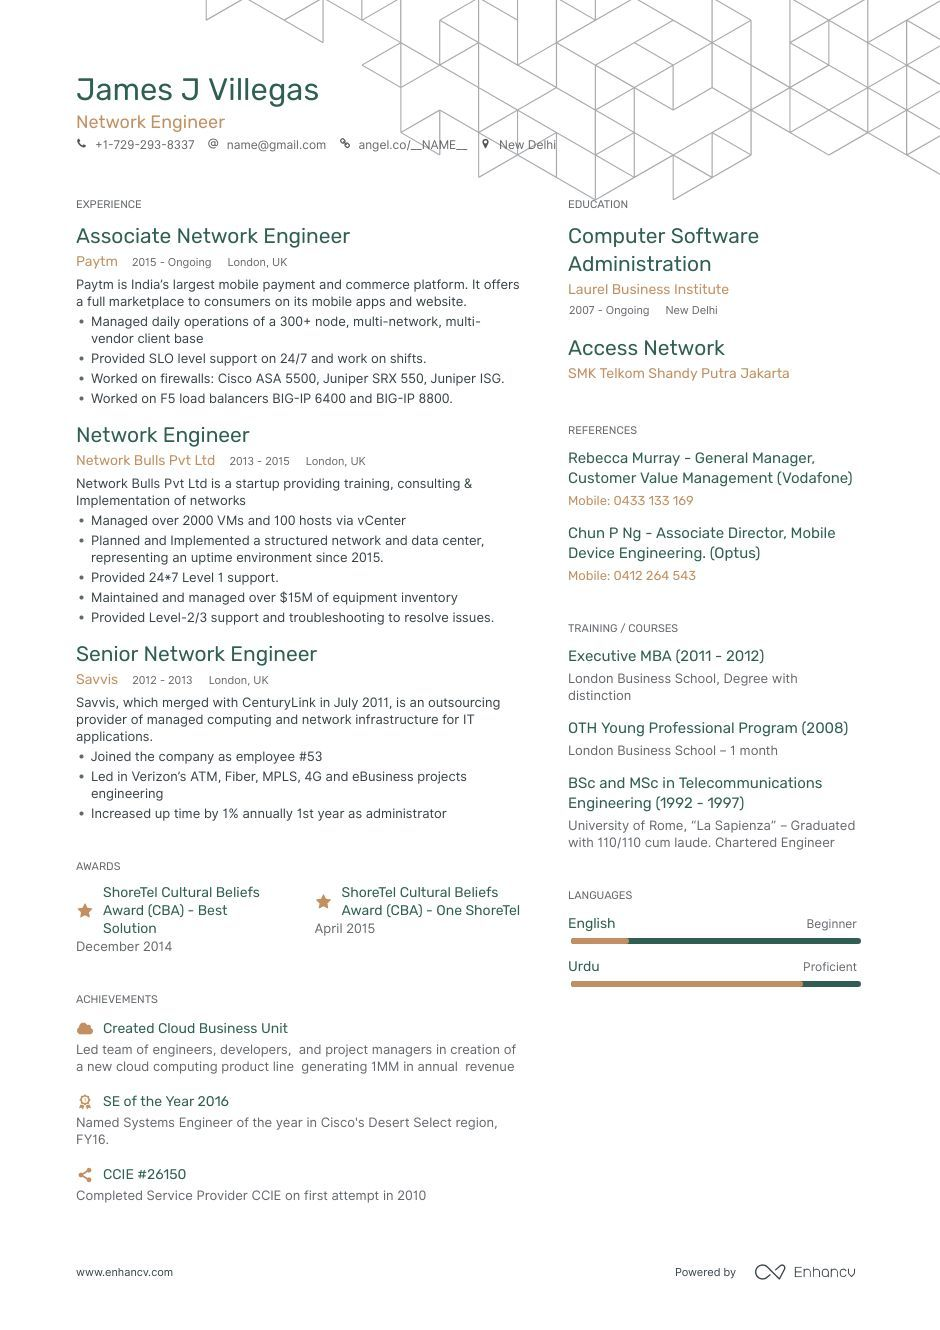 network engineer resume samples with examples ccie security sample agribusiness work for Resume Ccie Security Resume Sample